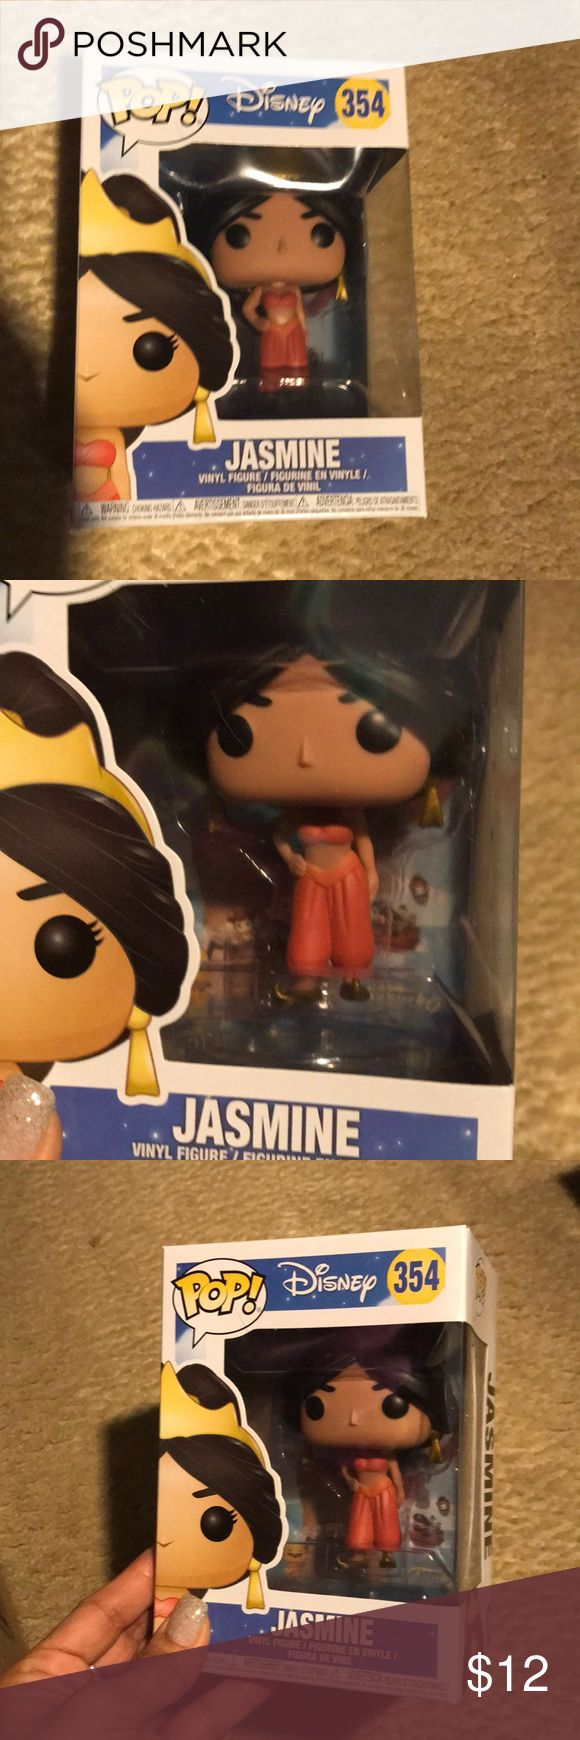 Disney JASMINE (Red Dress) Funko Pop Brand New no trades price is firm Accessories